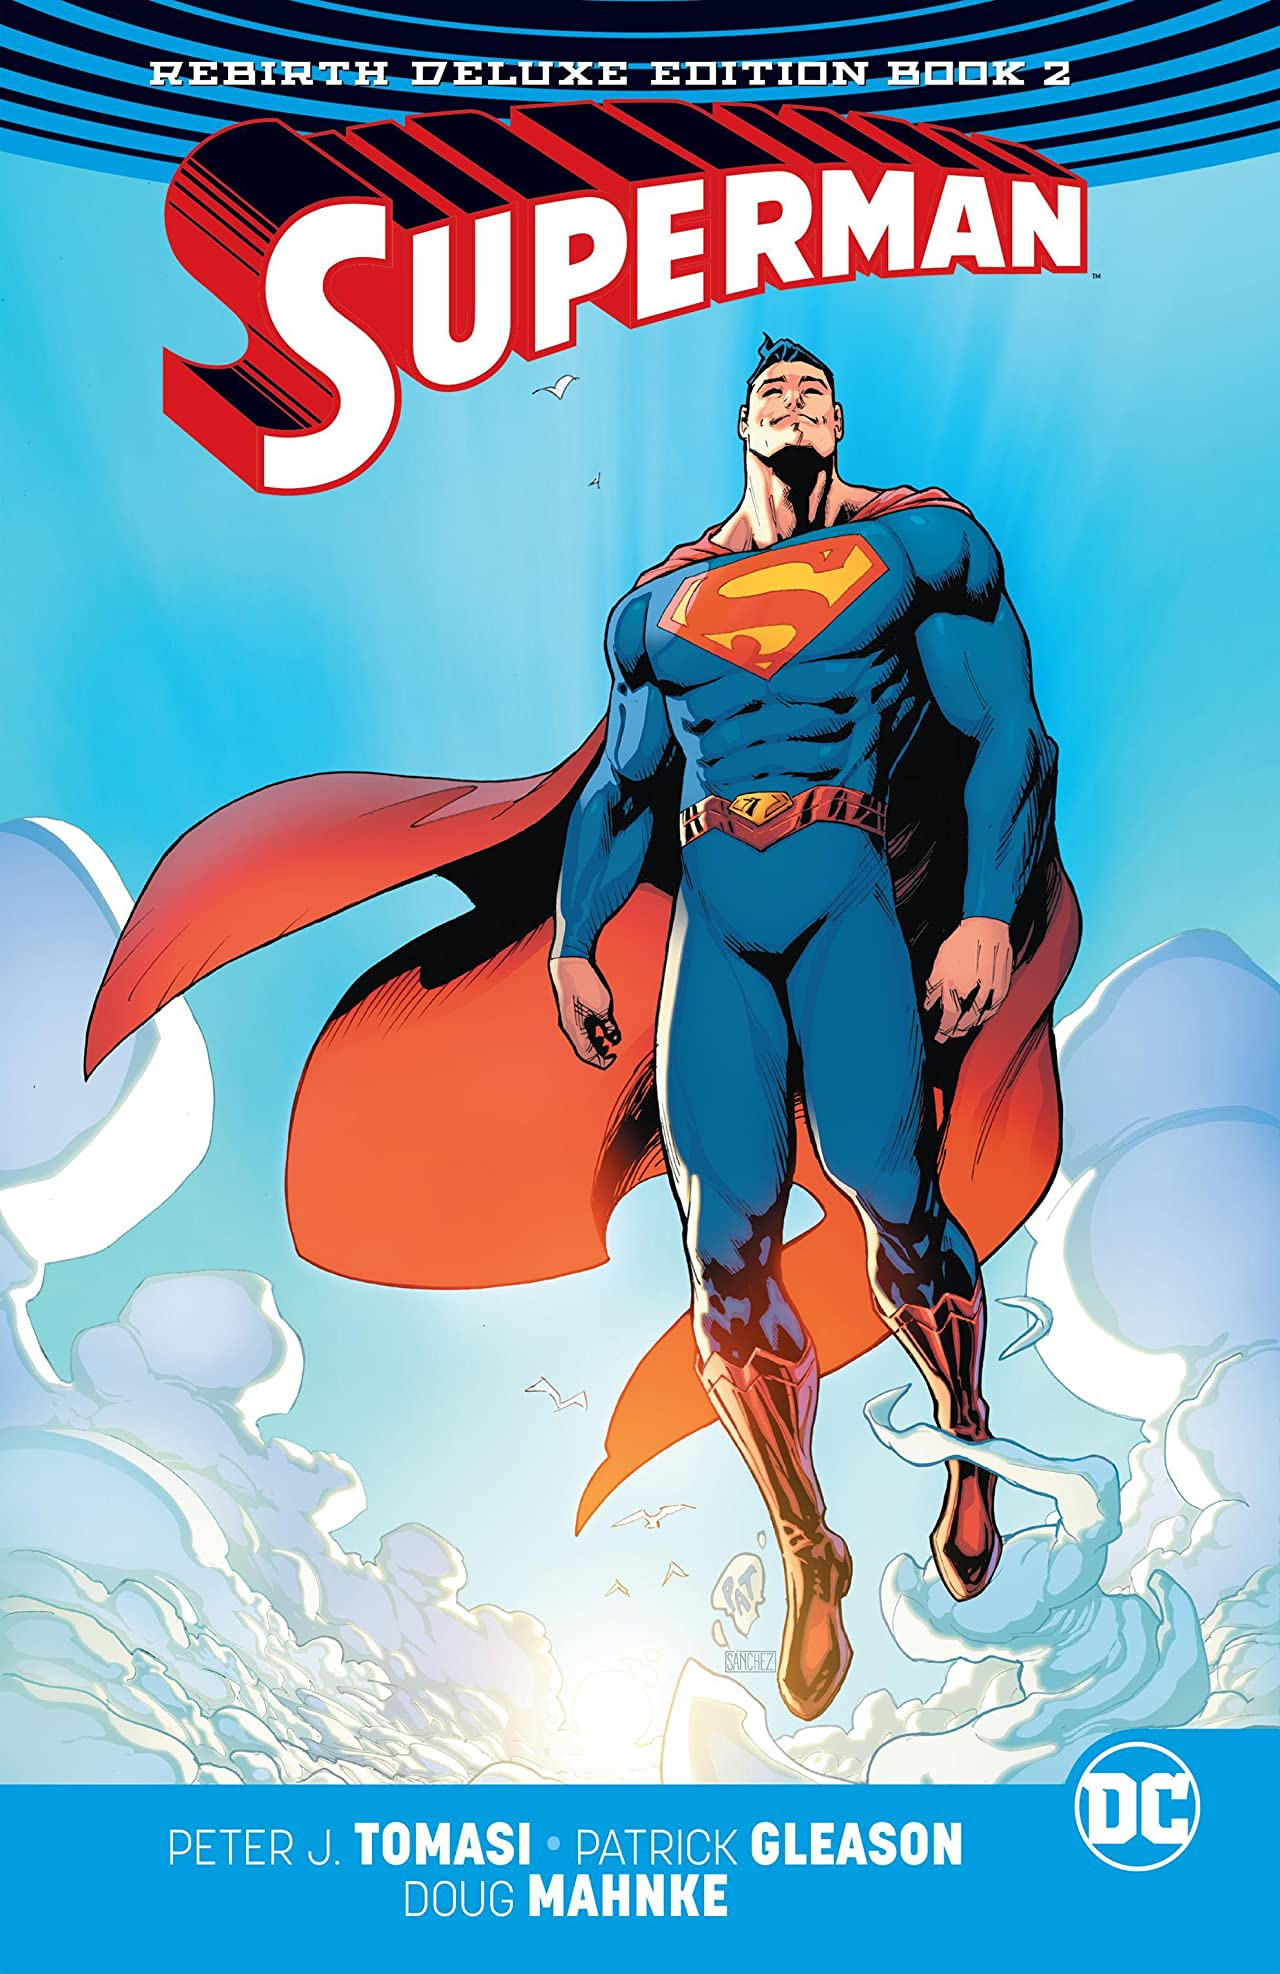 Superman (2016-2018): The Rebirth - Deluxe Edition: Book 2